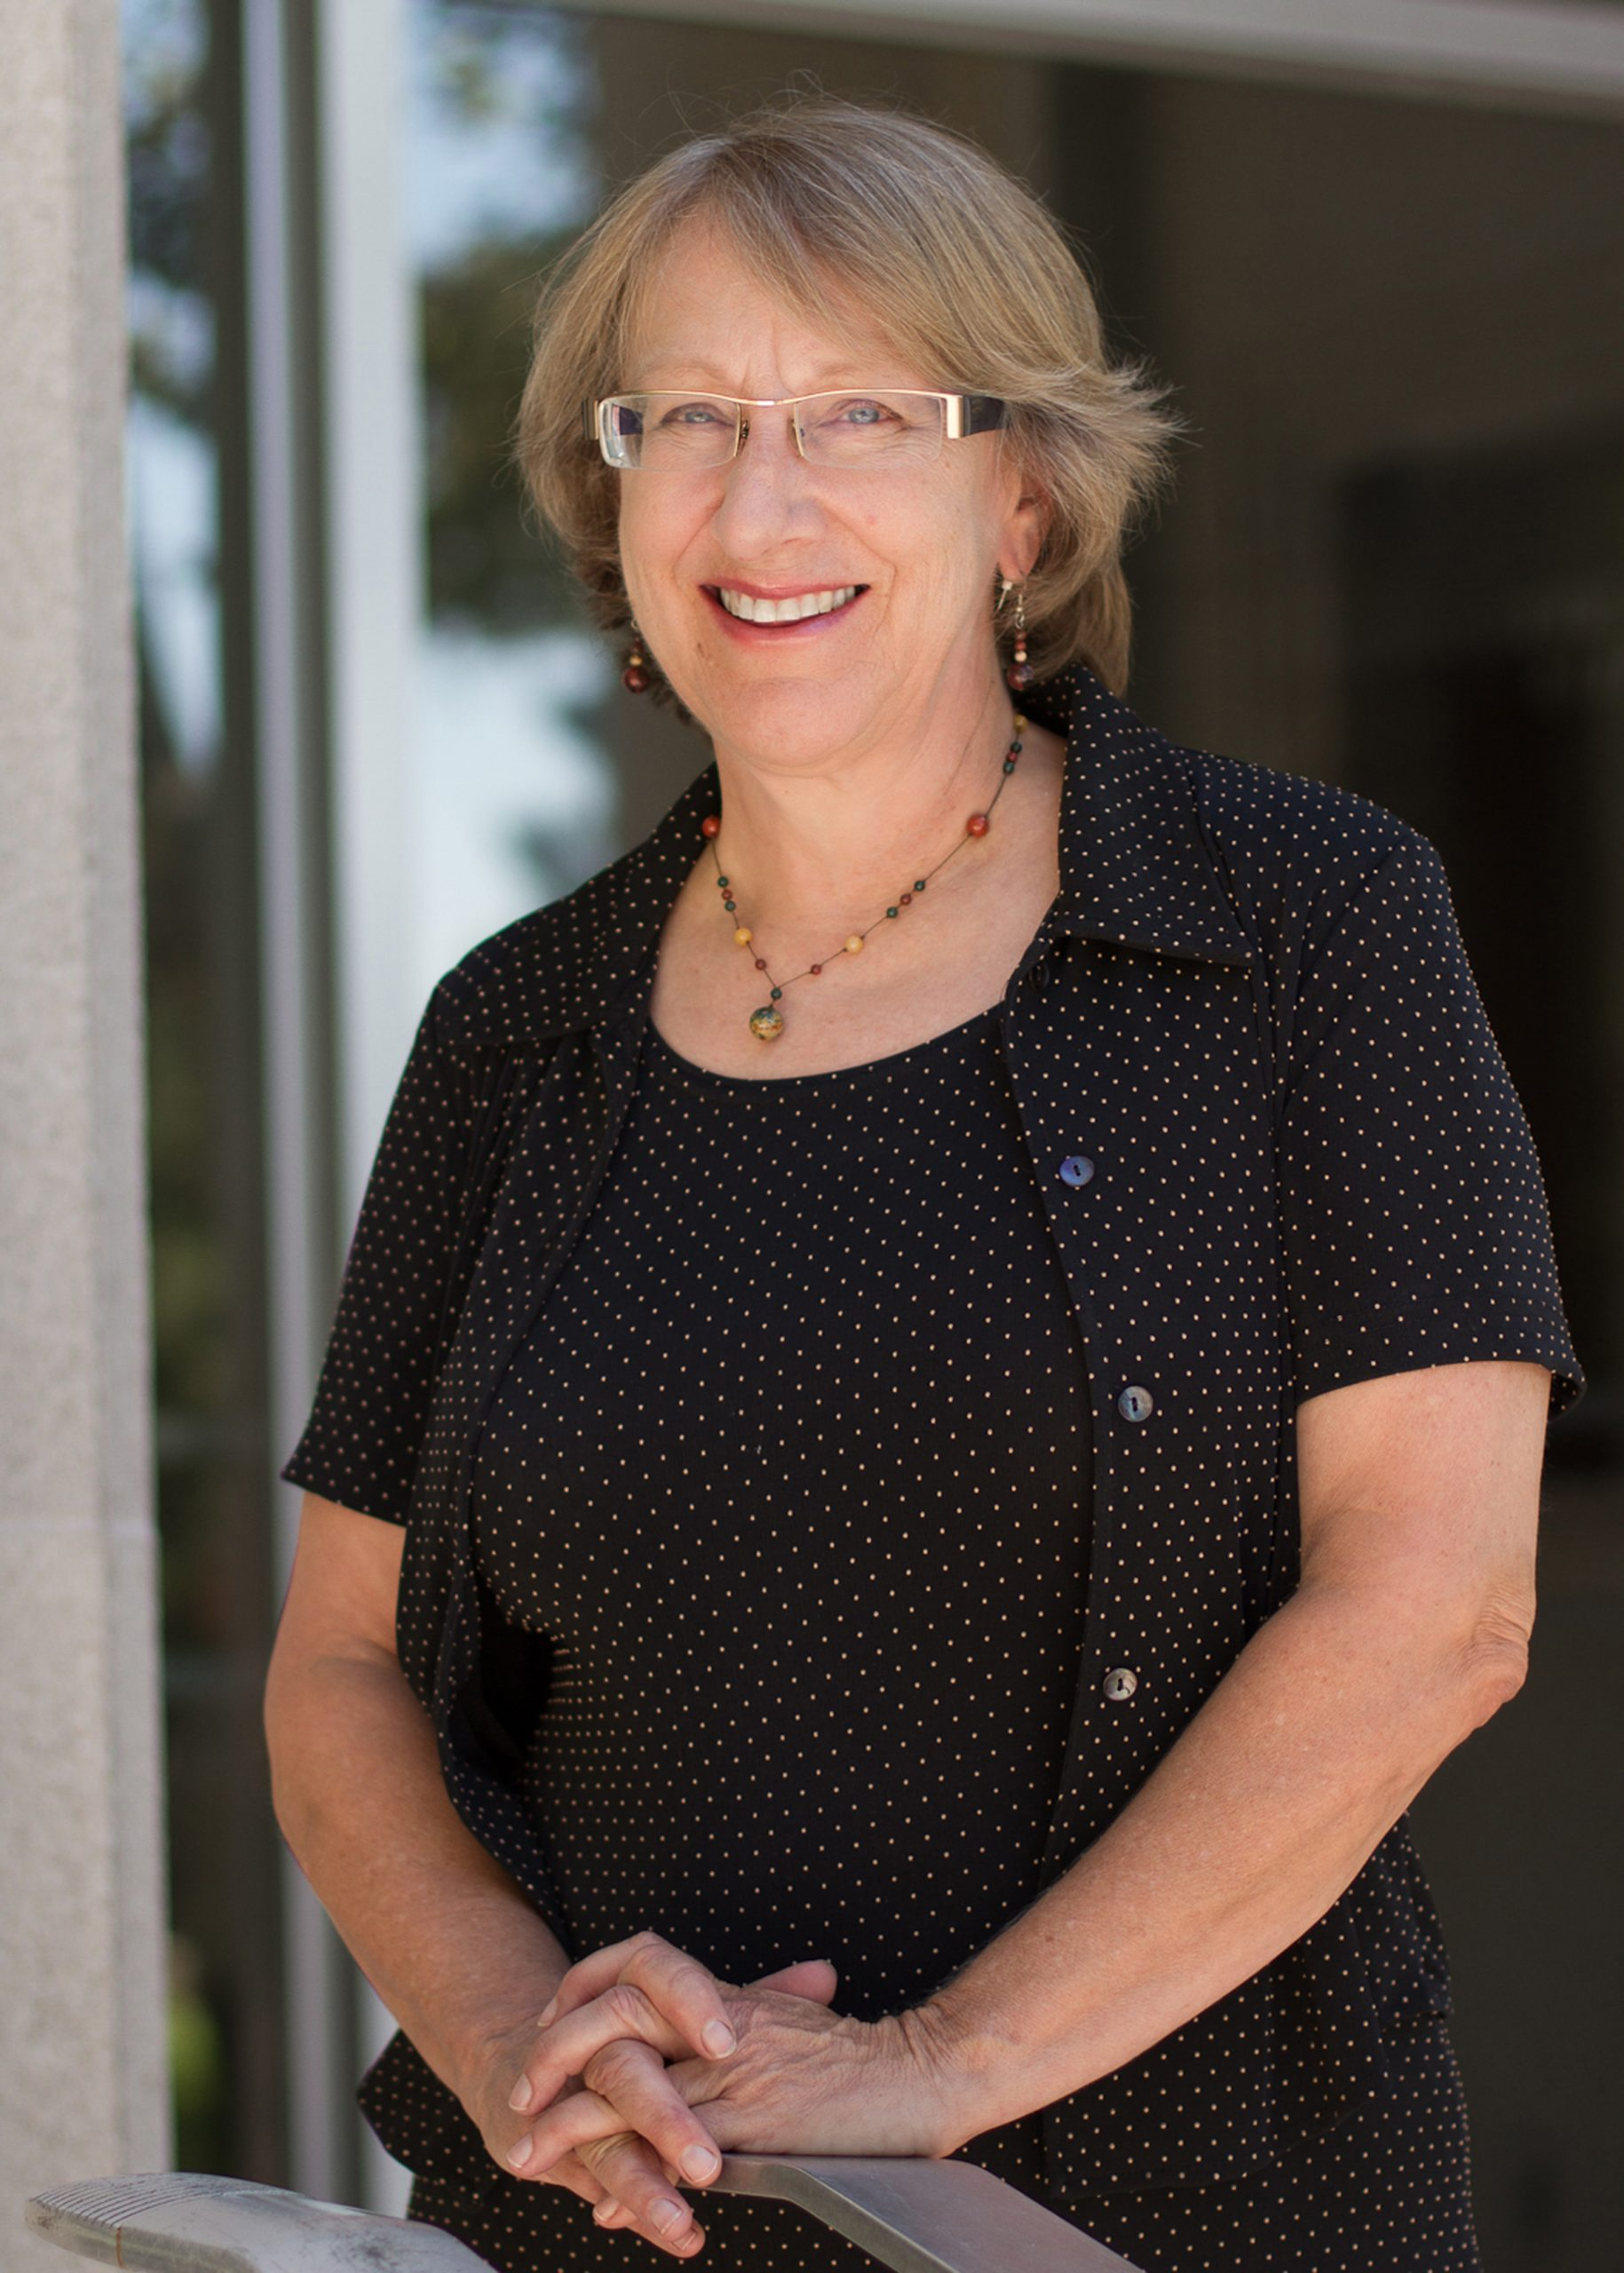 """U of U law professor Debora Threedy earned a degree in theatre before turning to law for a more stable career. In 2009, she wrote a one-act play called """"Stumped,"""" which was inspired by a 1978 court case that was decided while she was a law student. In the case, the Supreme Court held absolutely immune a judge who approved the sterilization of a minor without notice or any sort of hearing. The somewhat autobiographical play depicts a young woman law student who struggles to reconcile the rule of law with her own sense of morality."""